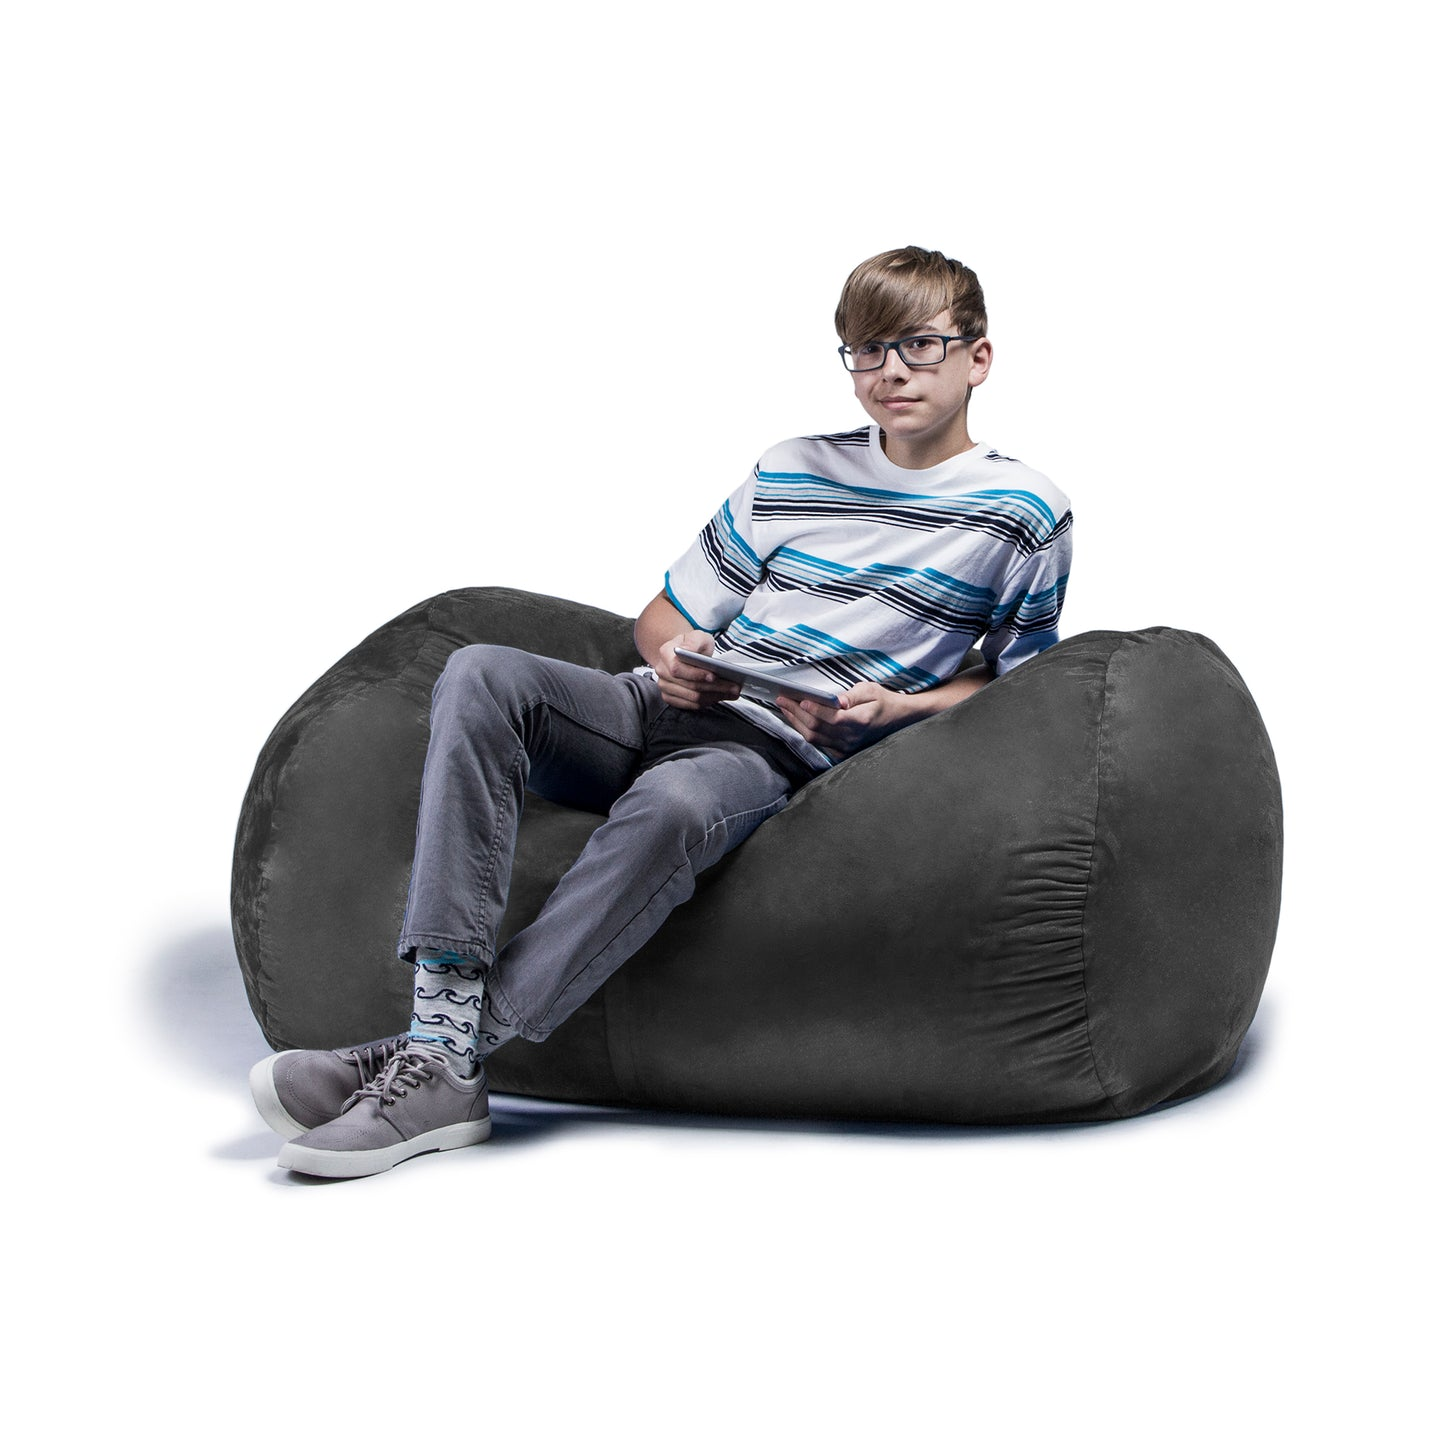 Jaxx 4 ft Lounger Bean Bag - Little Tactile